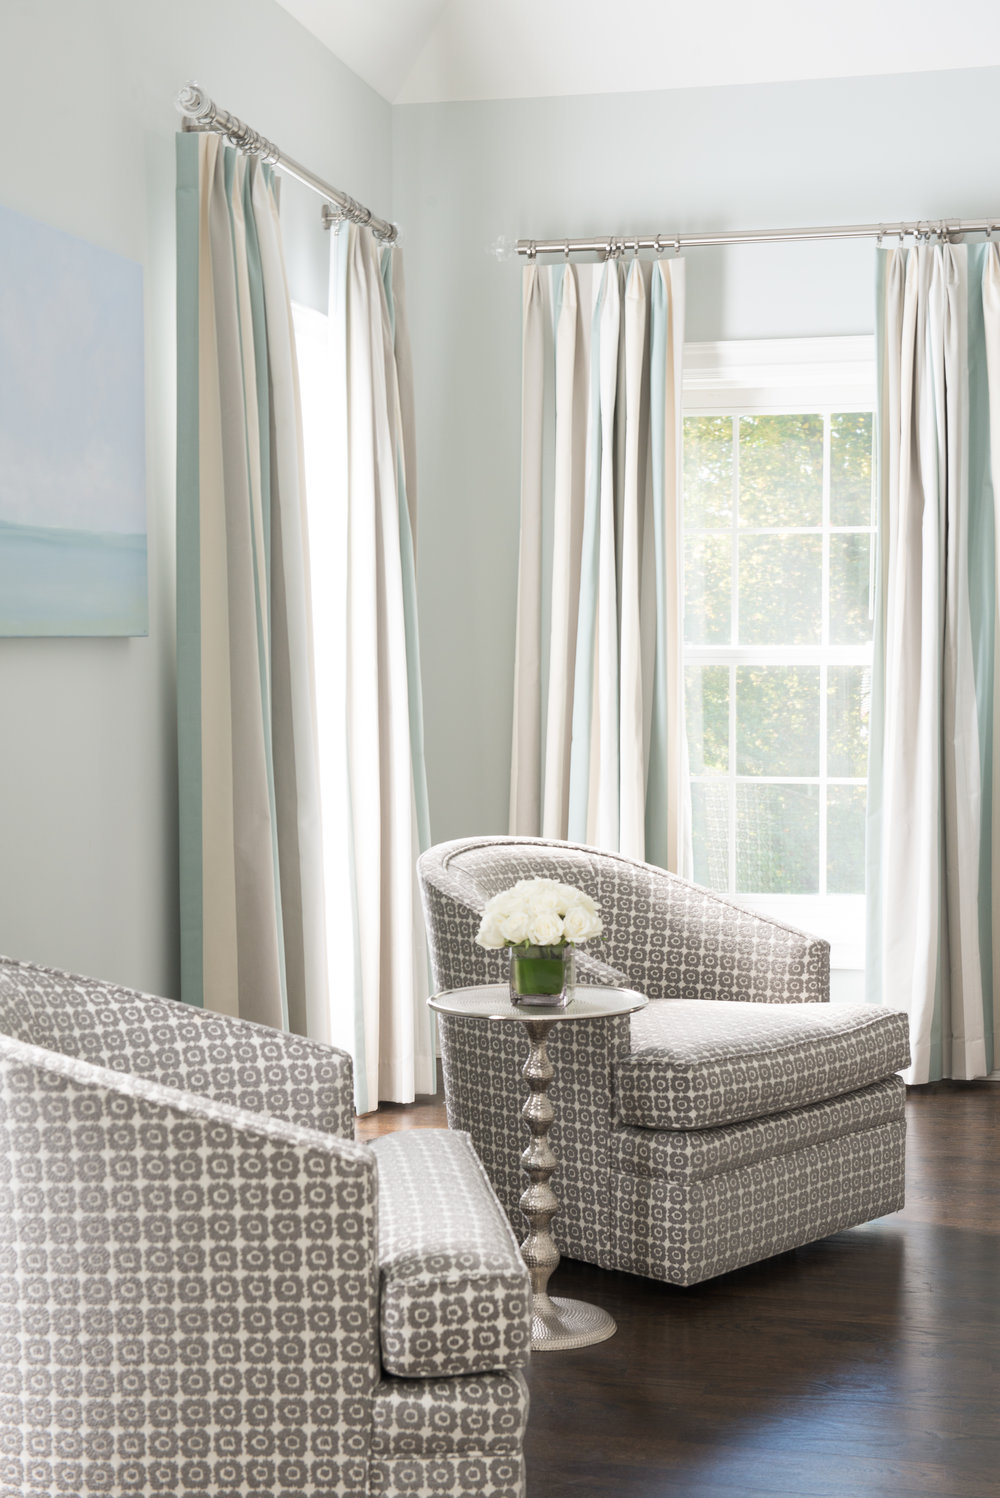 LIVING ROOM - SEAT LOUNGE - DRAPES - TABLE